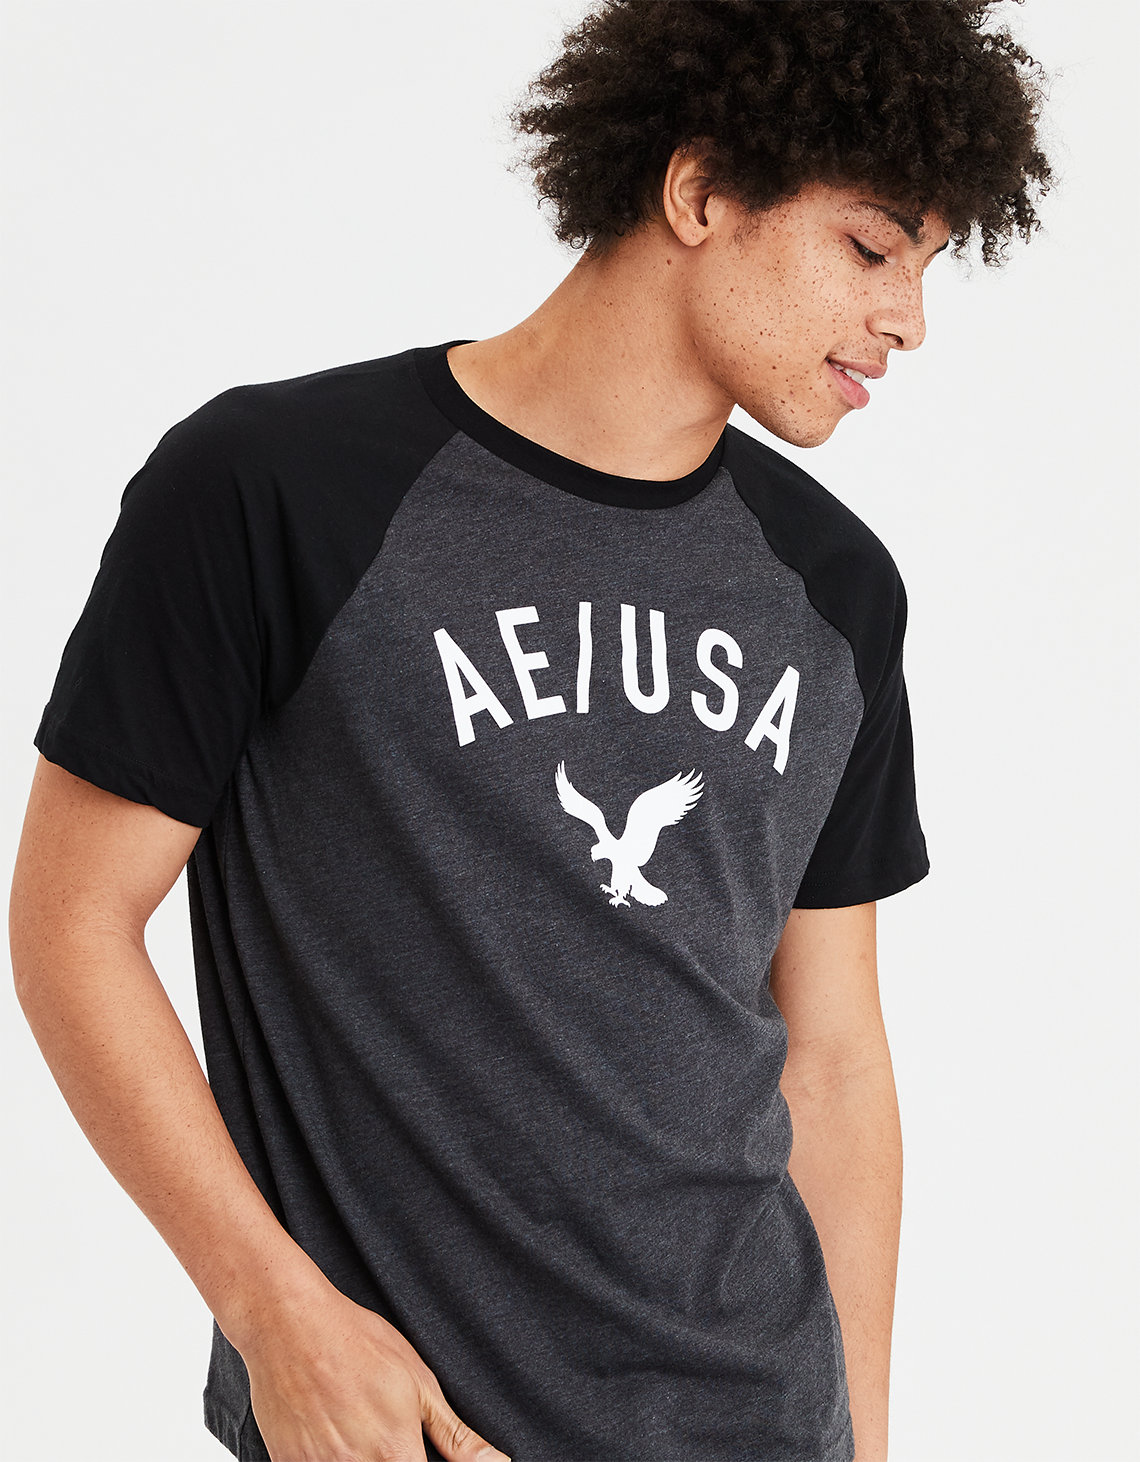 a5d0d202 AE Graphic T-Shirt, Obsidian Black   American Eagle Outfitters